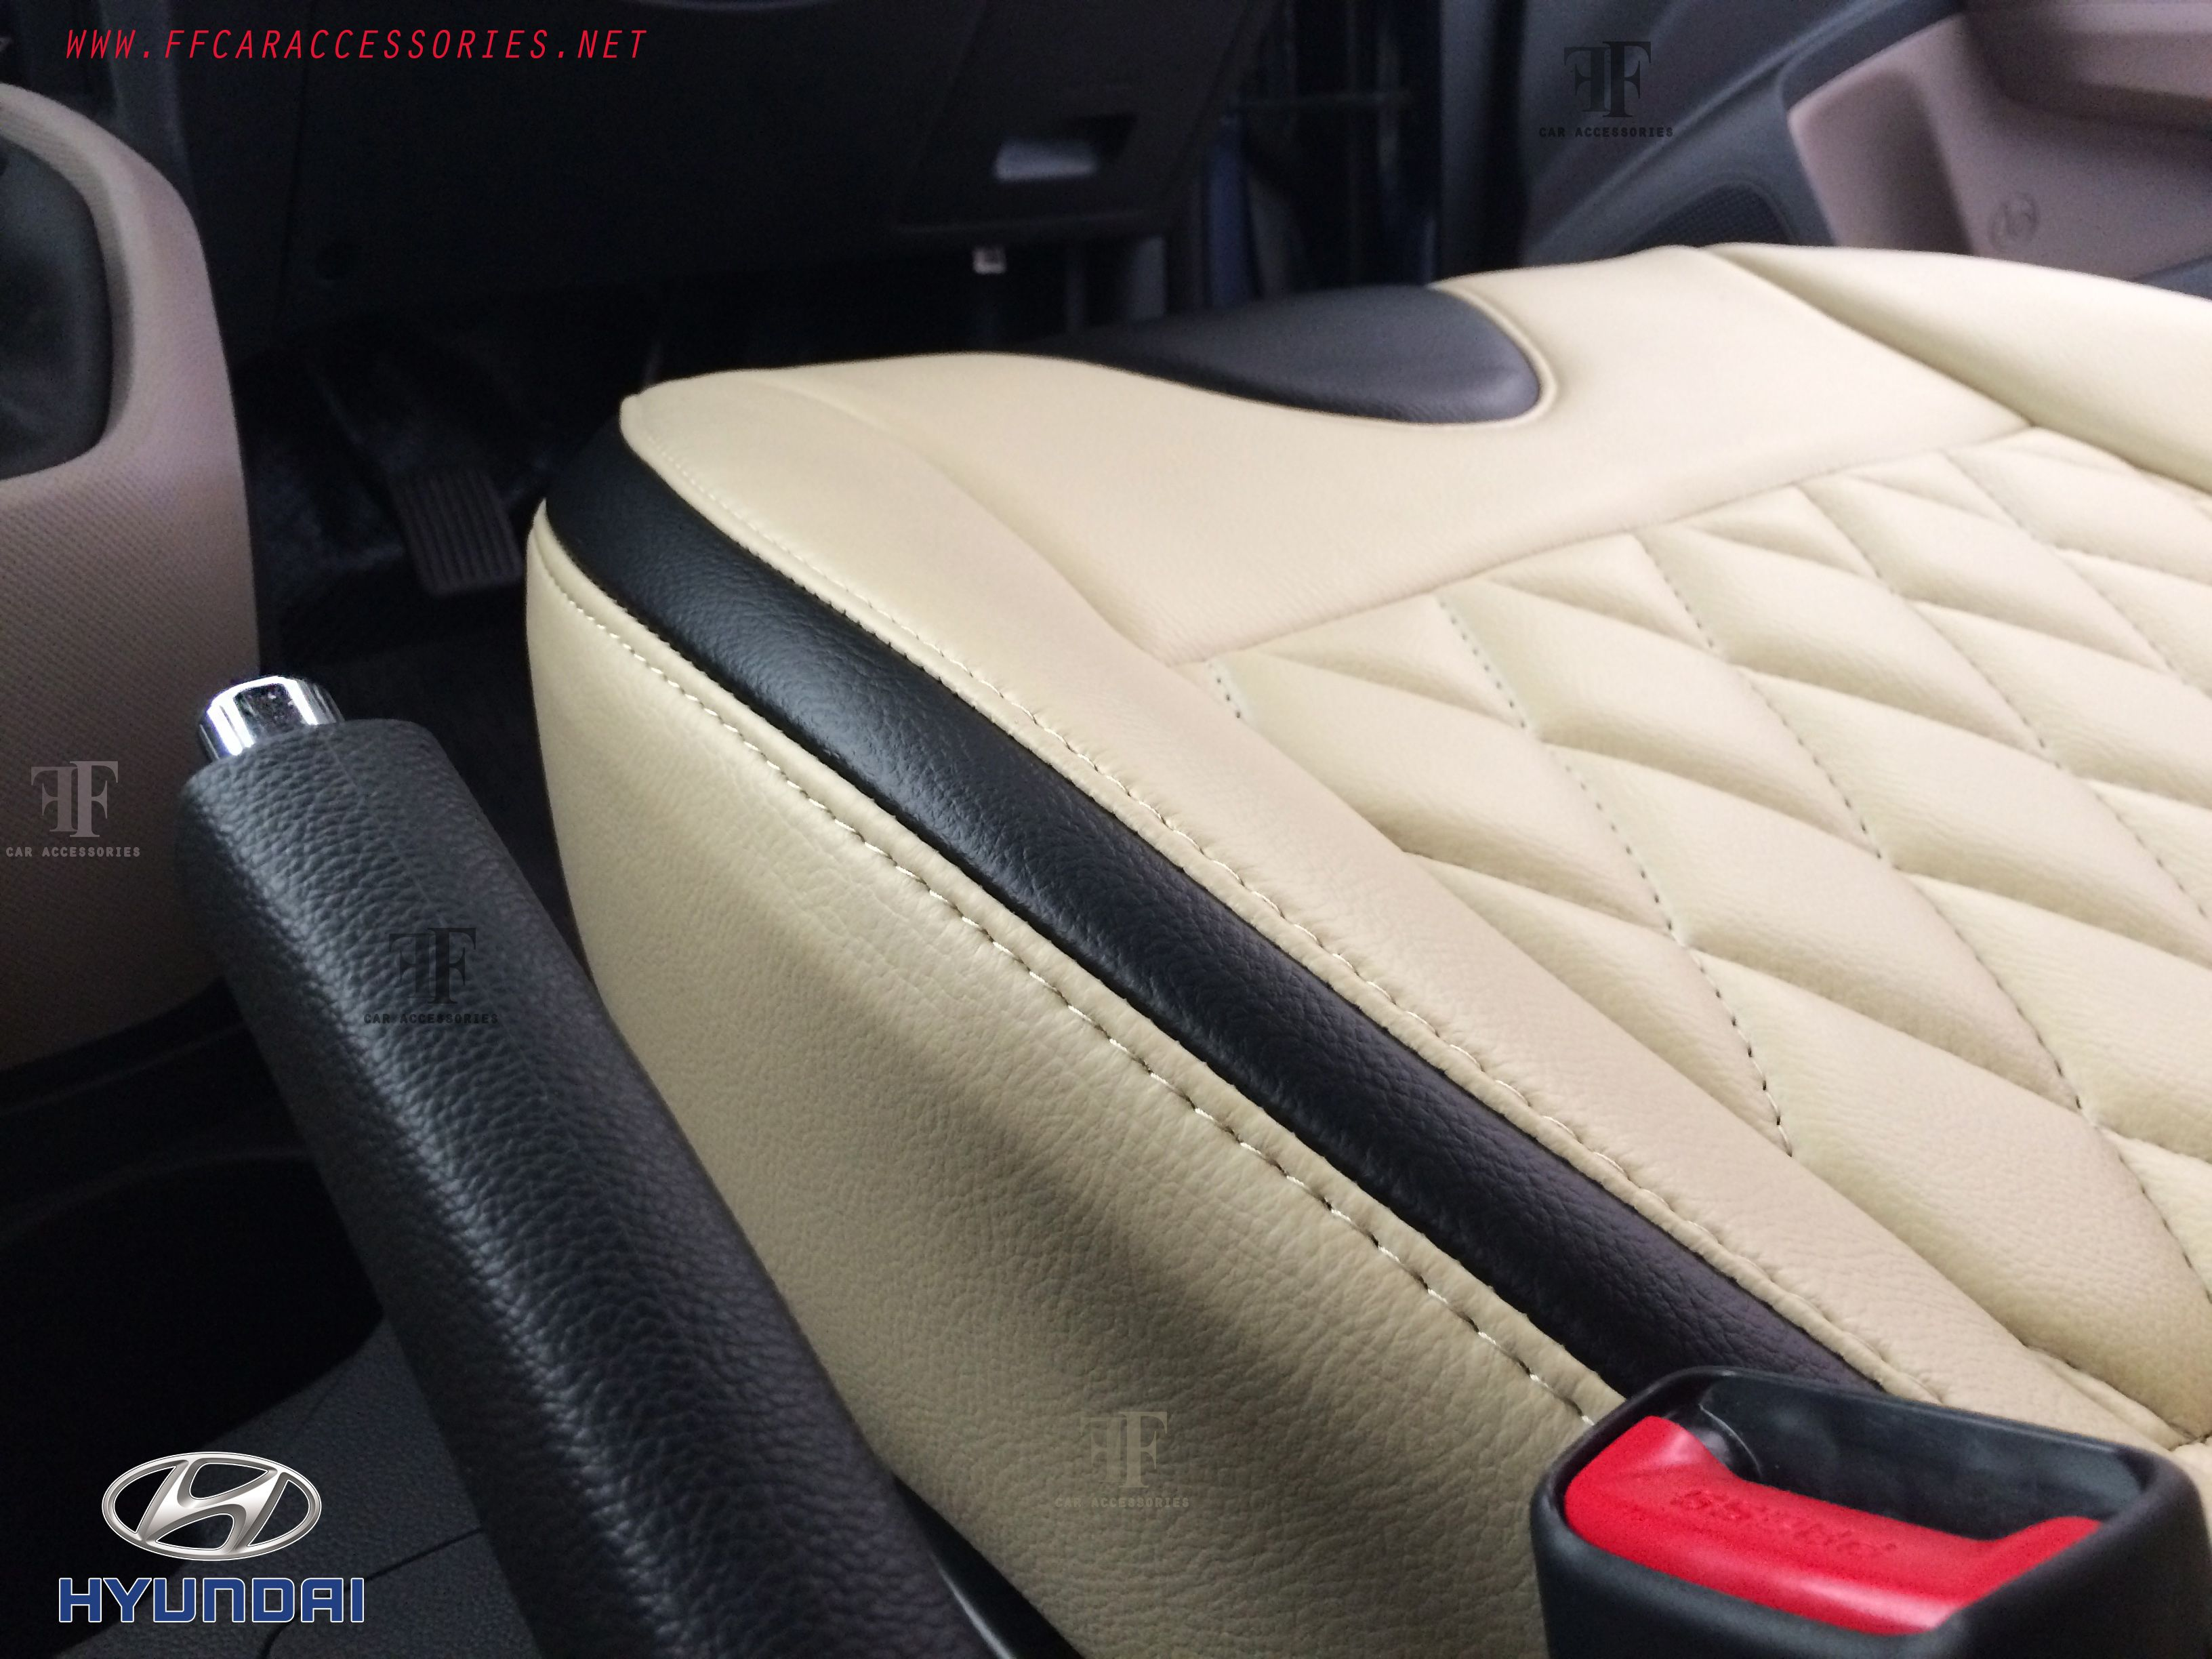 Factory Made Seat Cover Installed On Hyundai Xcent By Team Ff Car